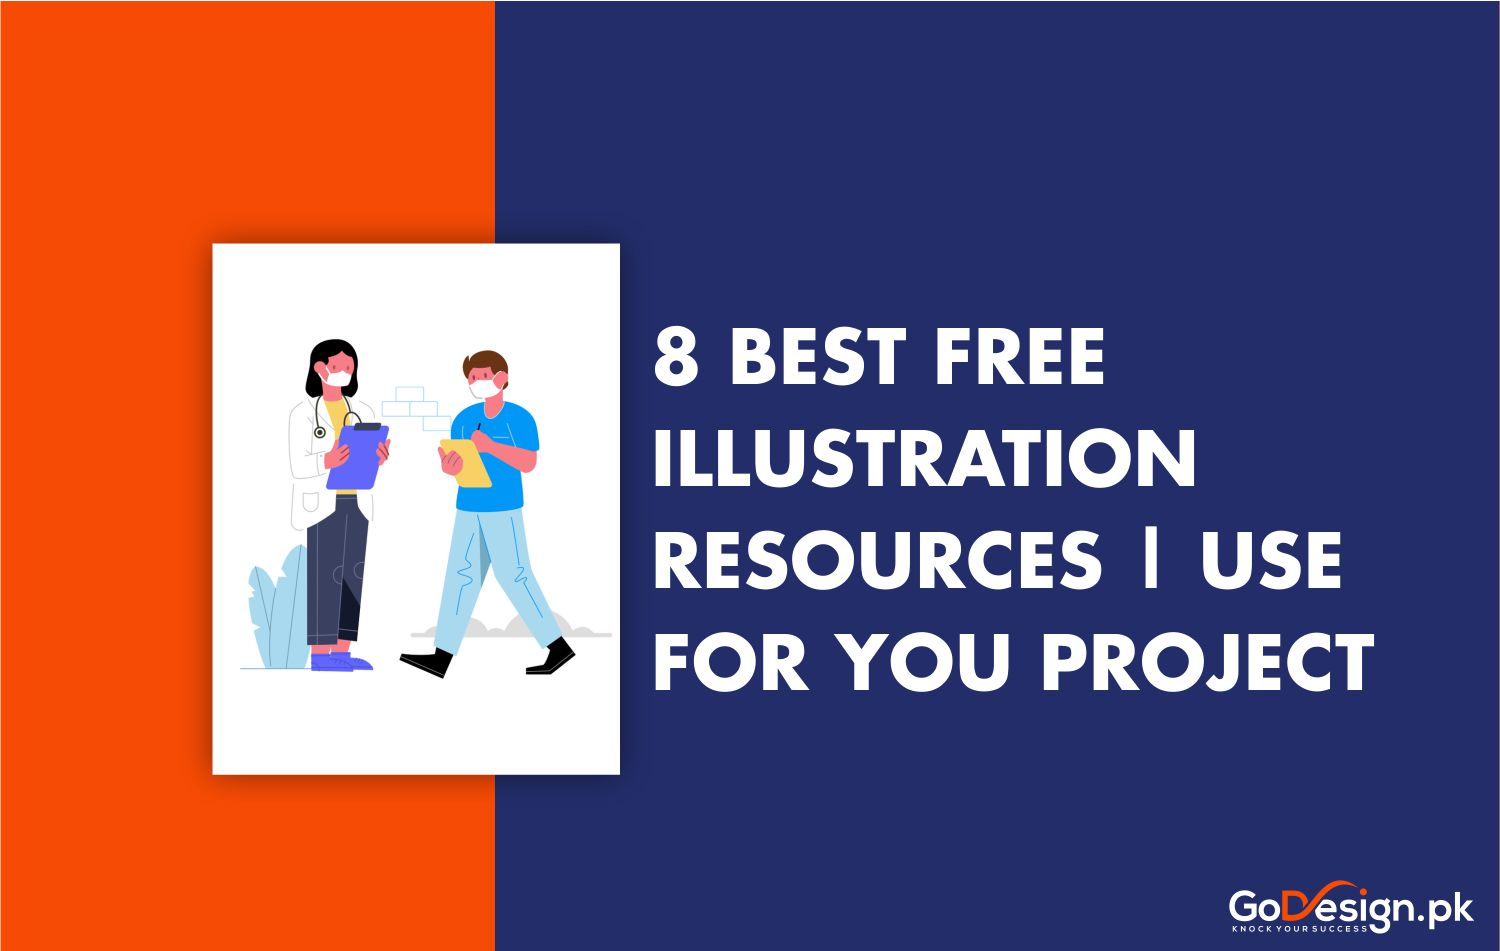 8 best free illustration resources